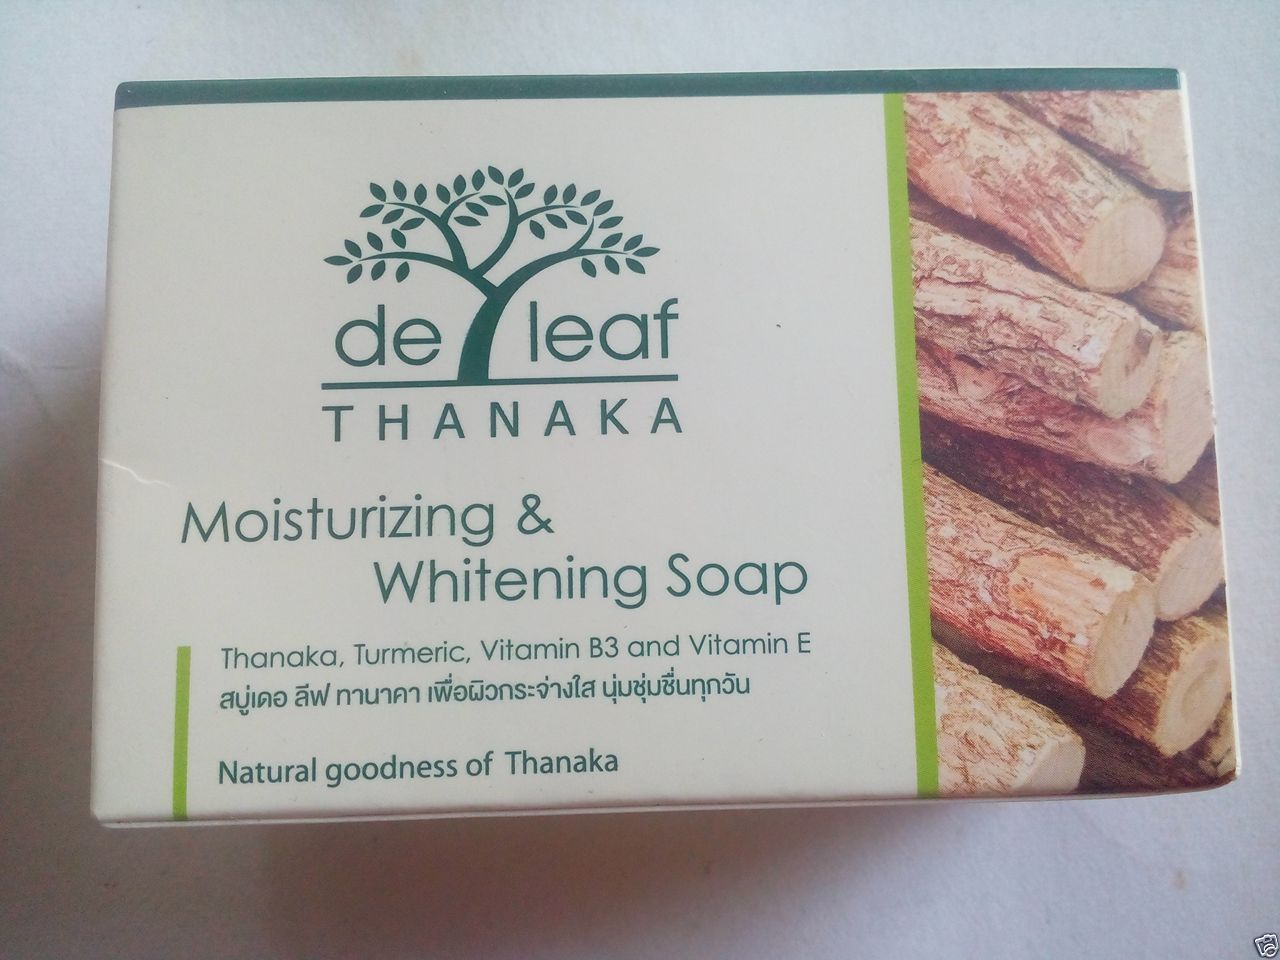 3 x De leaf Thanaka Moisturizing Whitening Soap Thanaka Turmeric Vitamin B3 , E